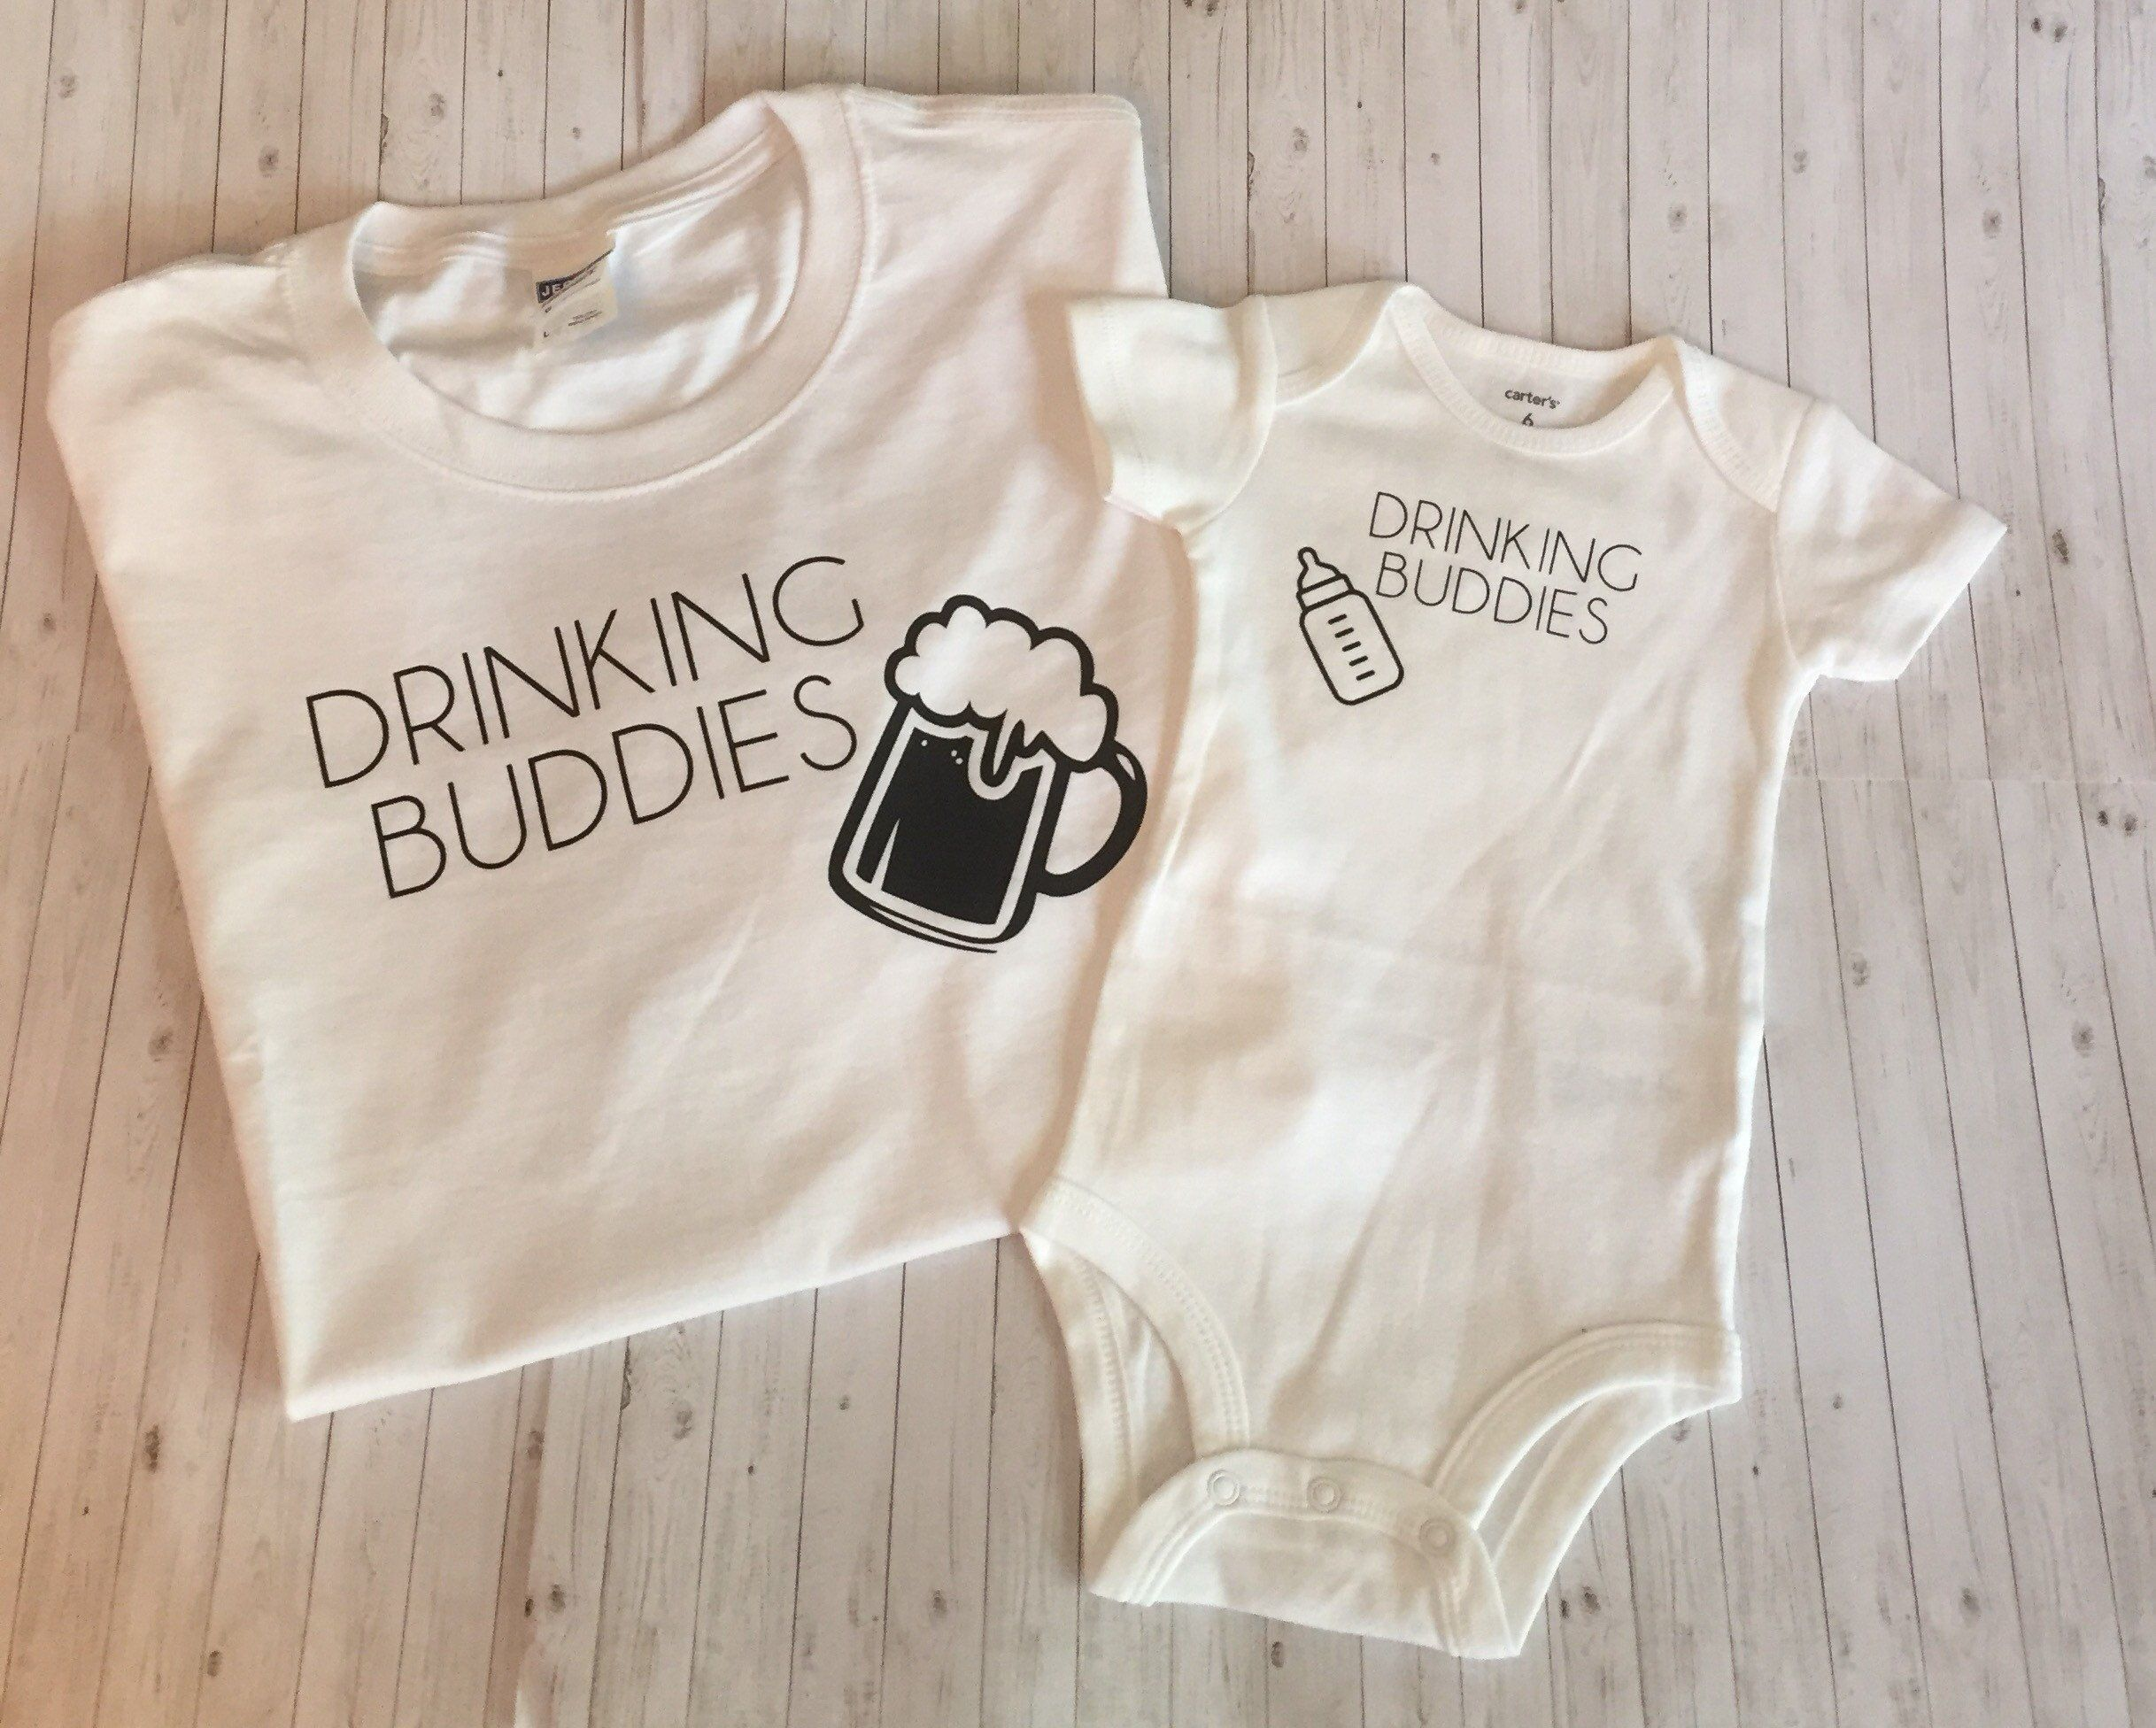 3ee4e008c Dad and son outfit set // father and son outfits // Father's Day gift // dad  birthday gift // drinking buddies outfit by CozyCornerDesignShop on Etsy